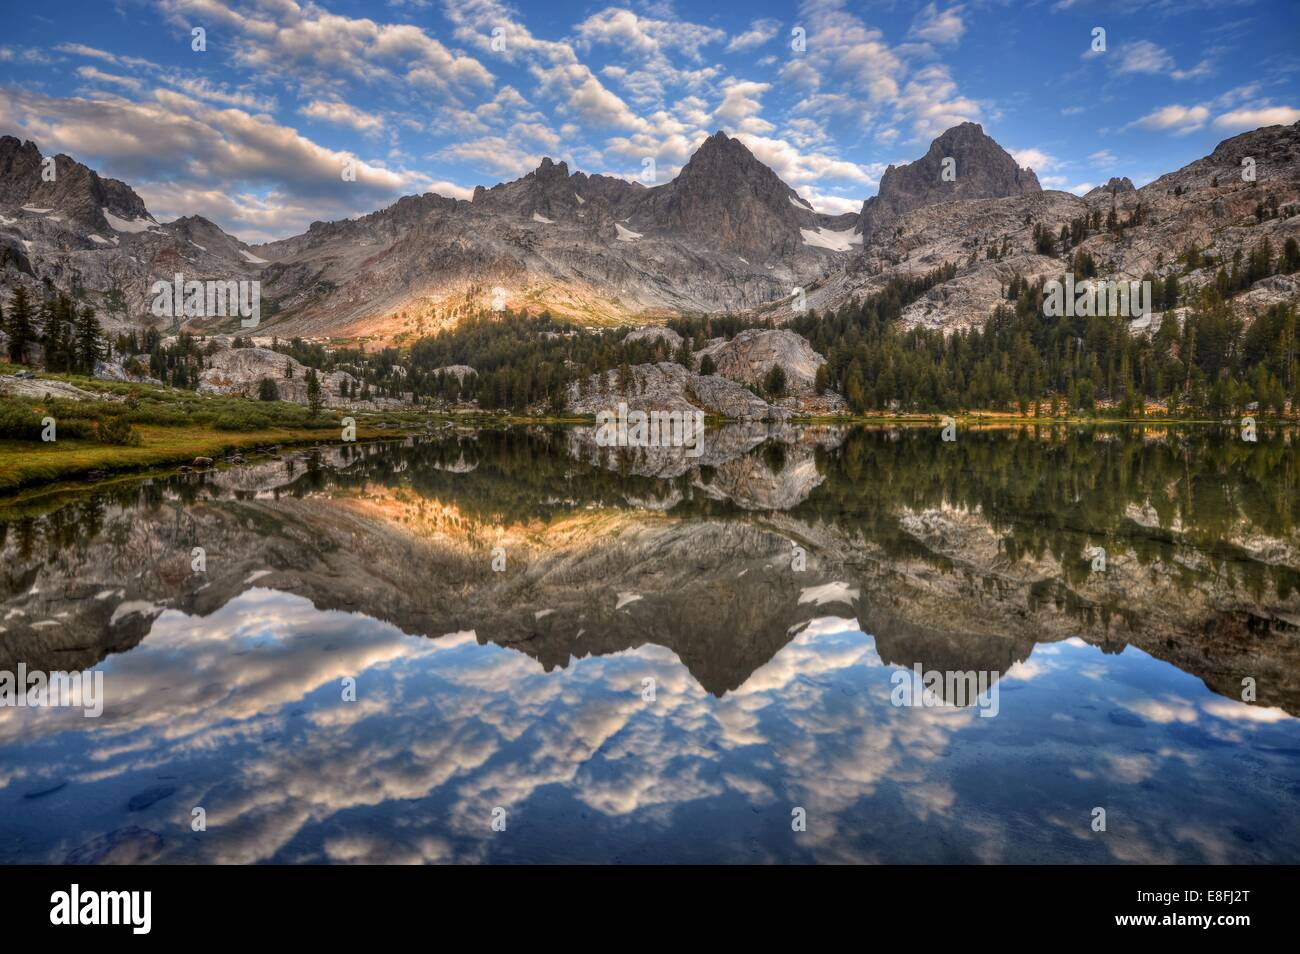 USA, California, Inyo National Forest, Banner Peak and Mount Ritter reflected in Lake Ediza - Stock Image